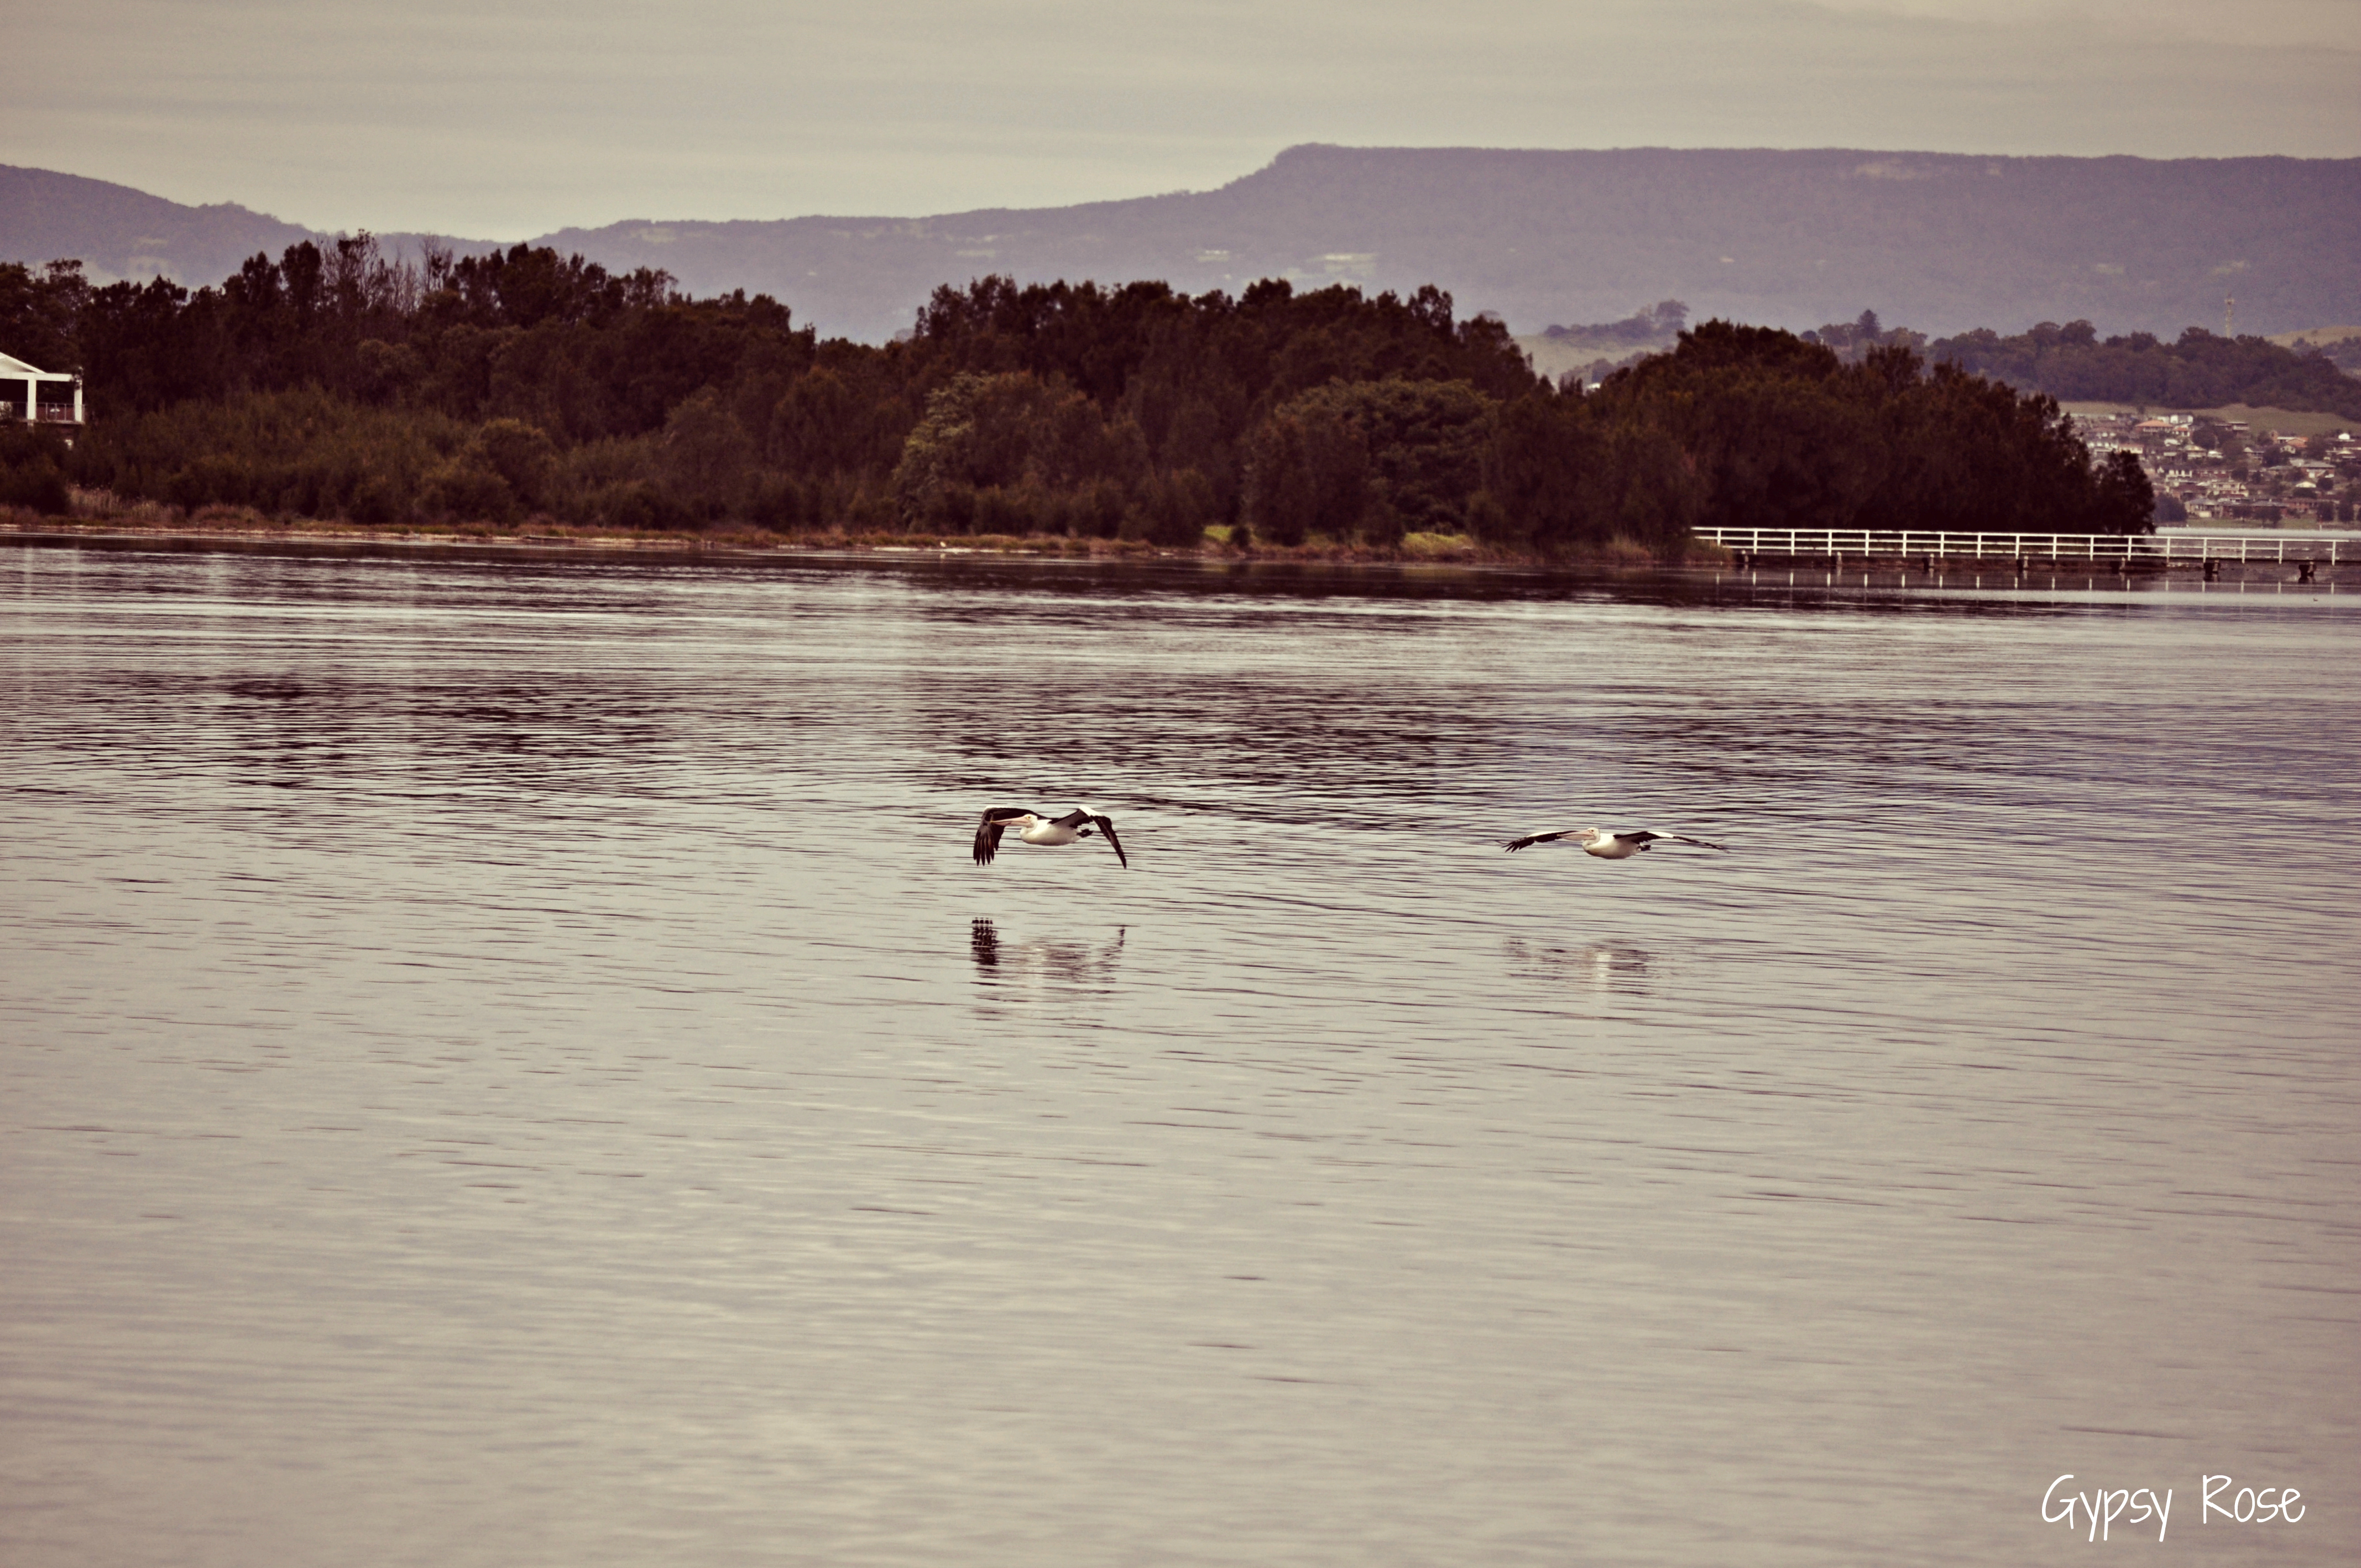 Lake Illawarra (Wollongong & Port Kembla Region)